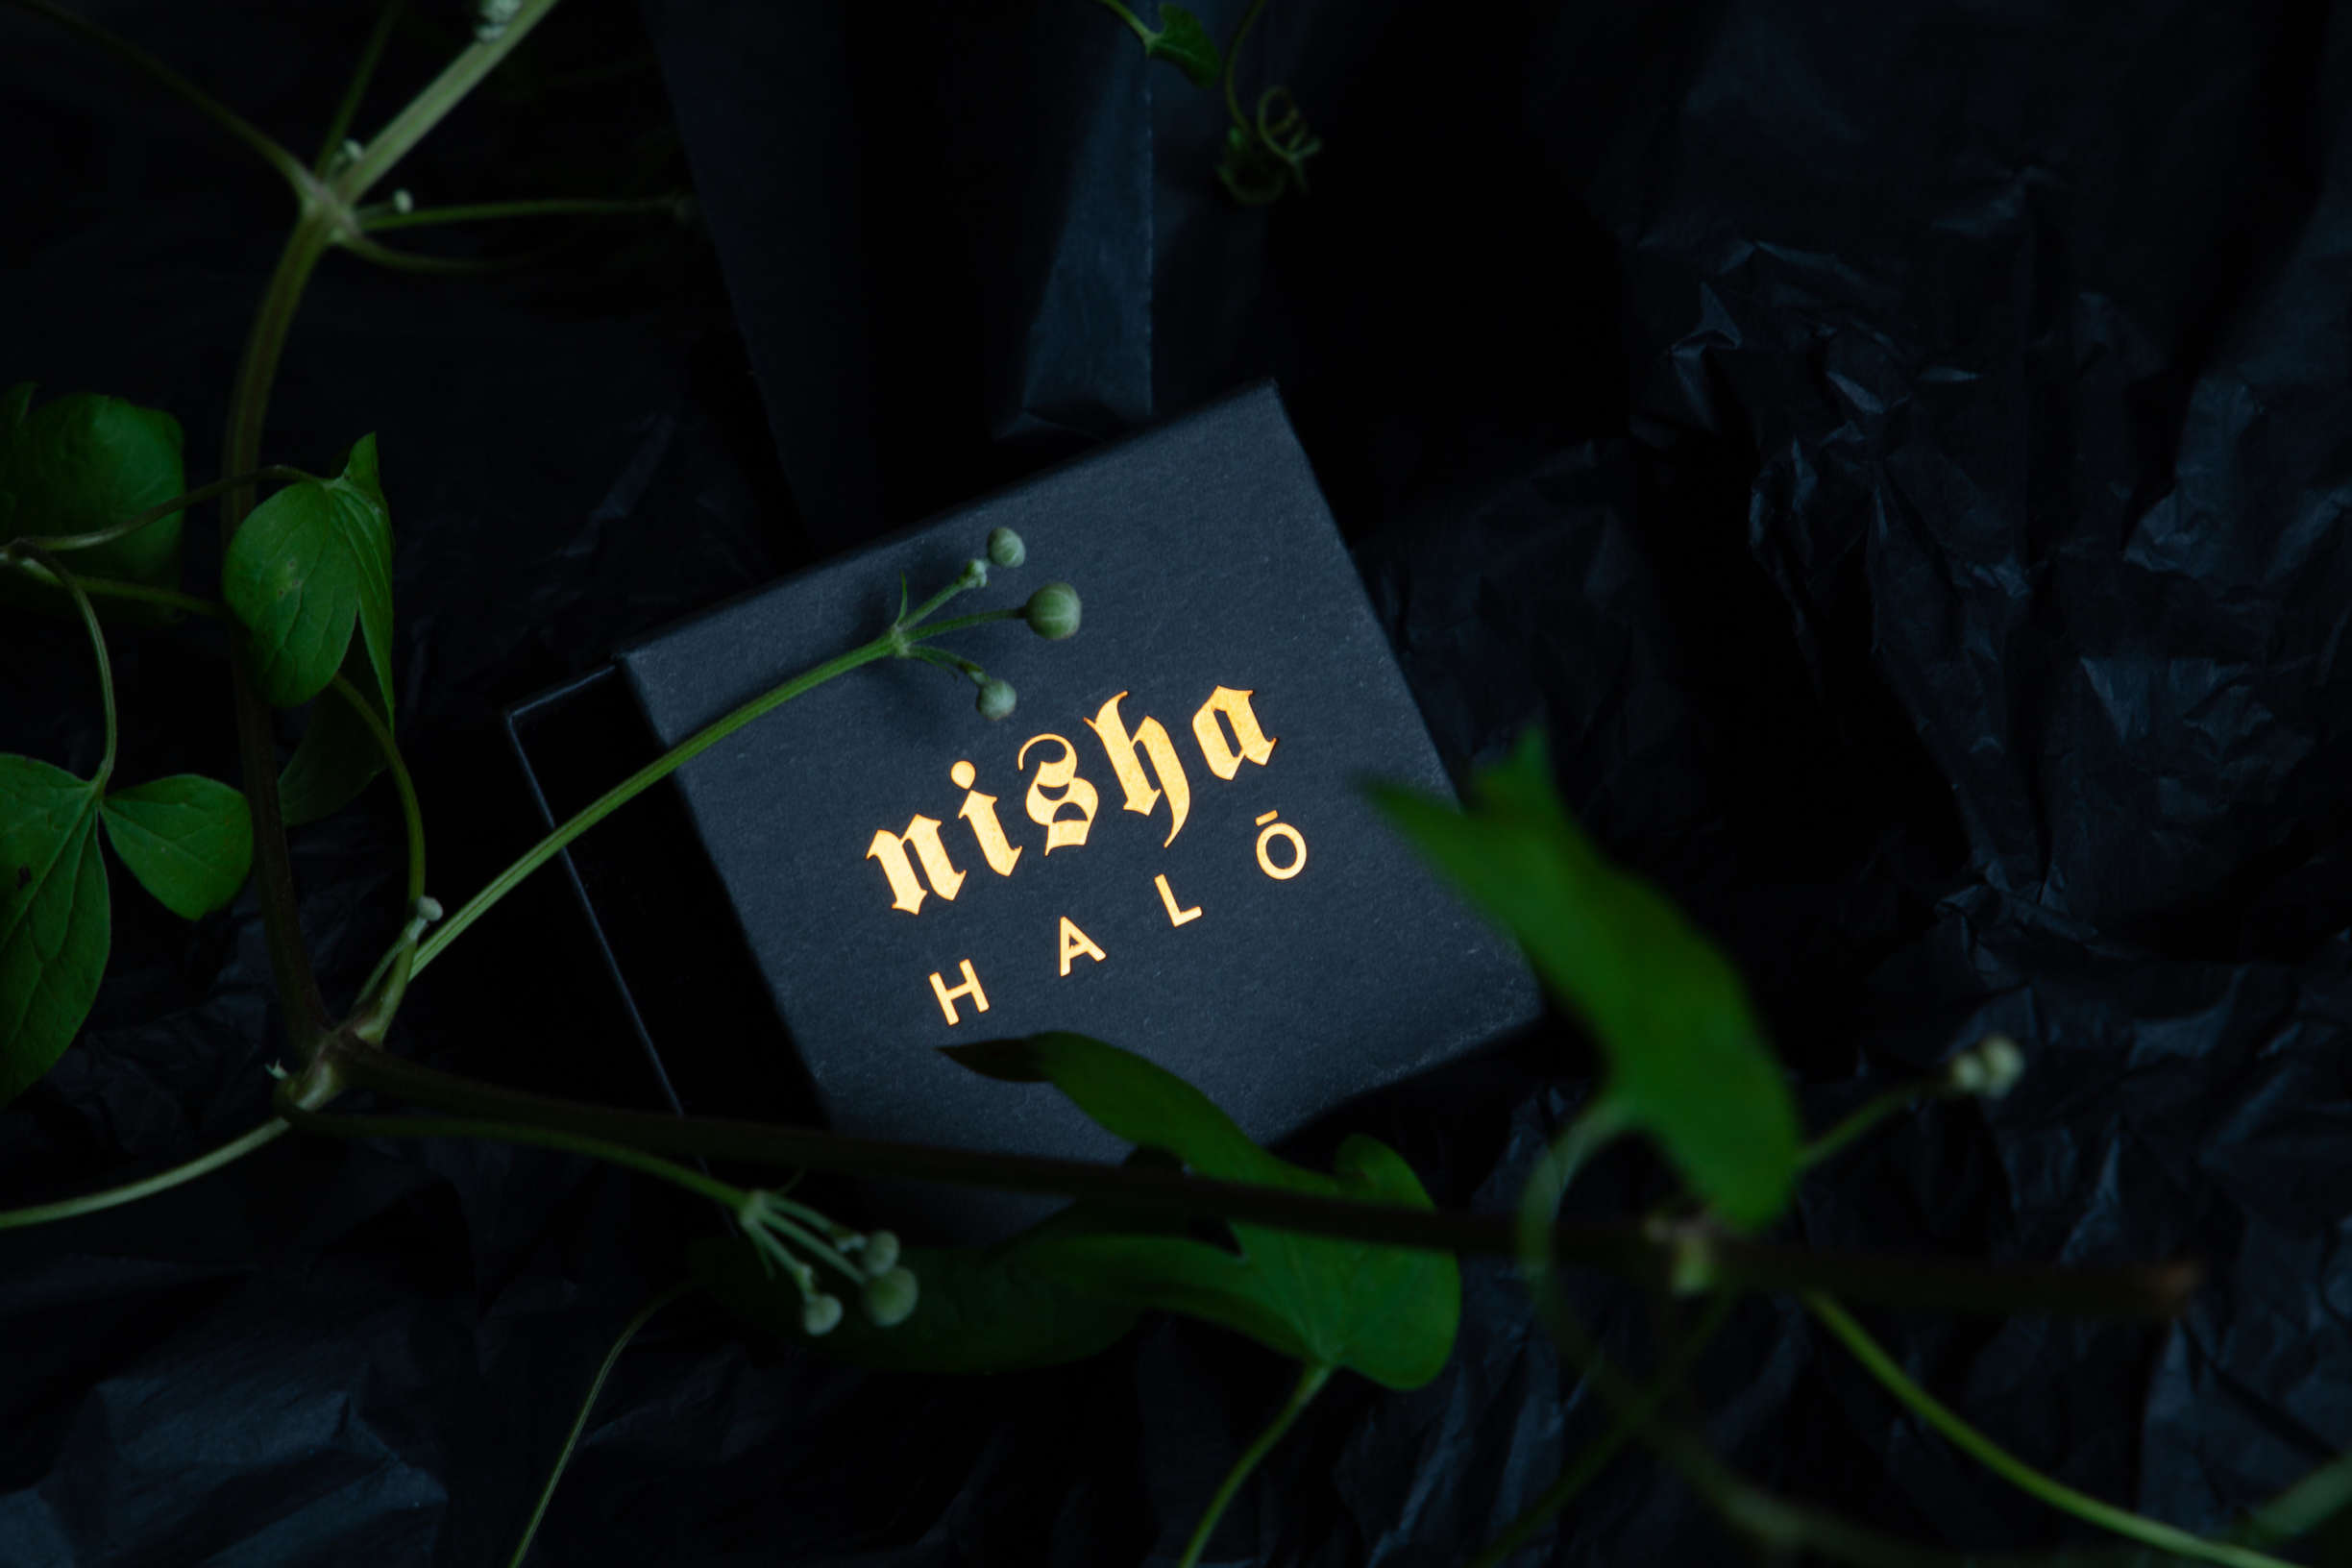 Nisha Halo Anna Cleary 4